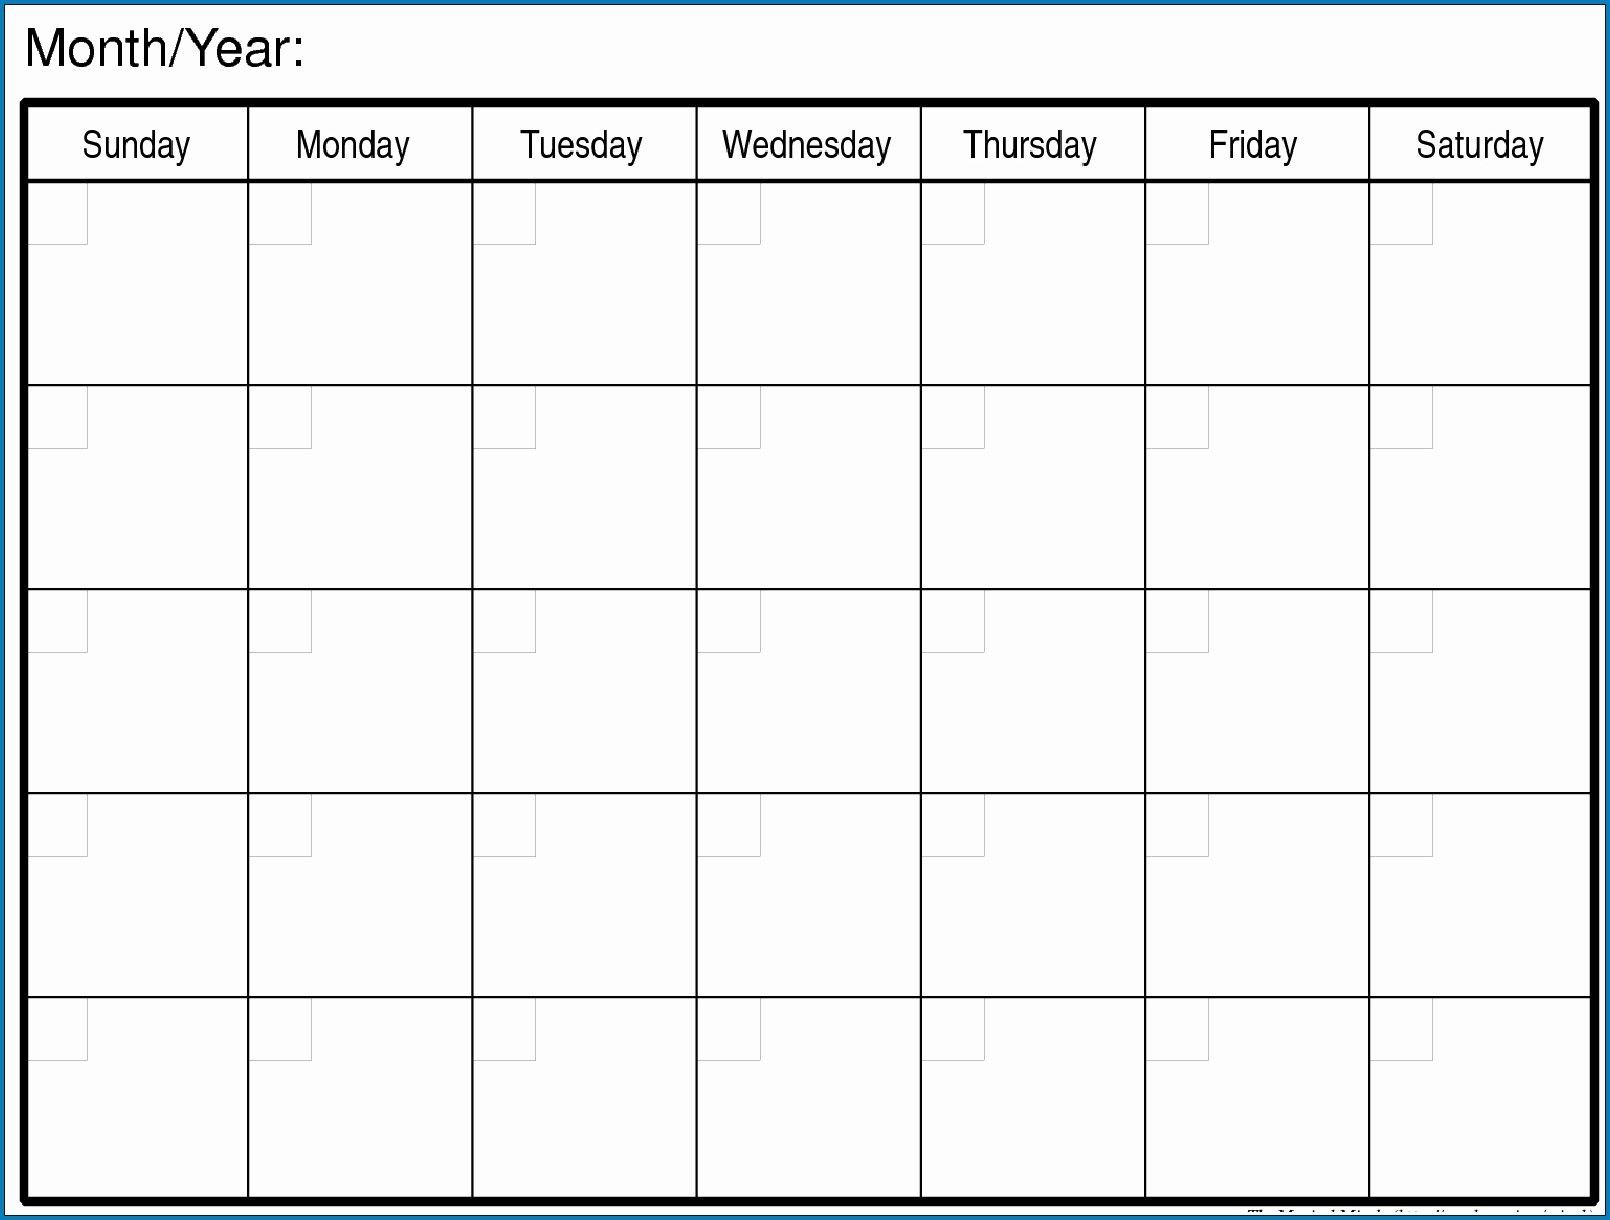 The Mon - Friday Monthly Calendar Template   Get Your Printable Monday To Friday Calendar